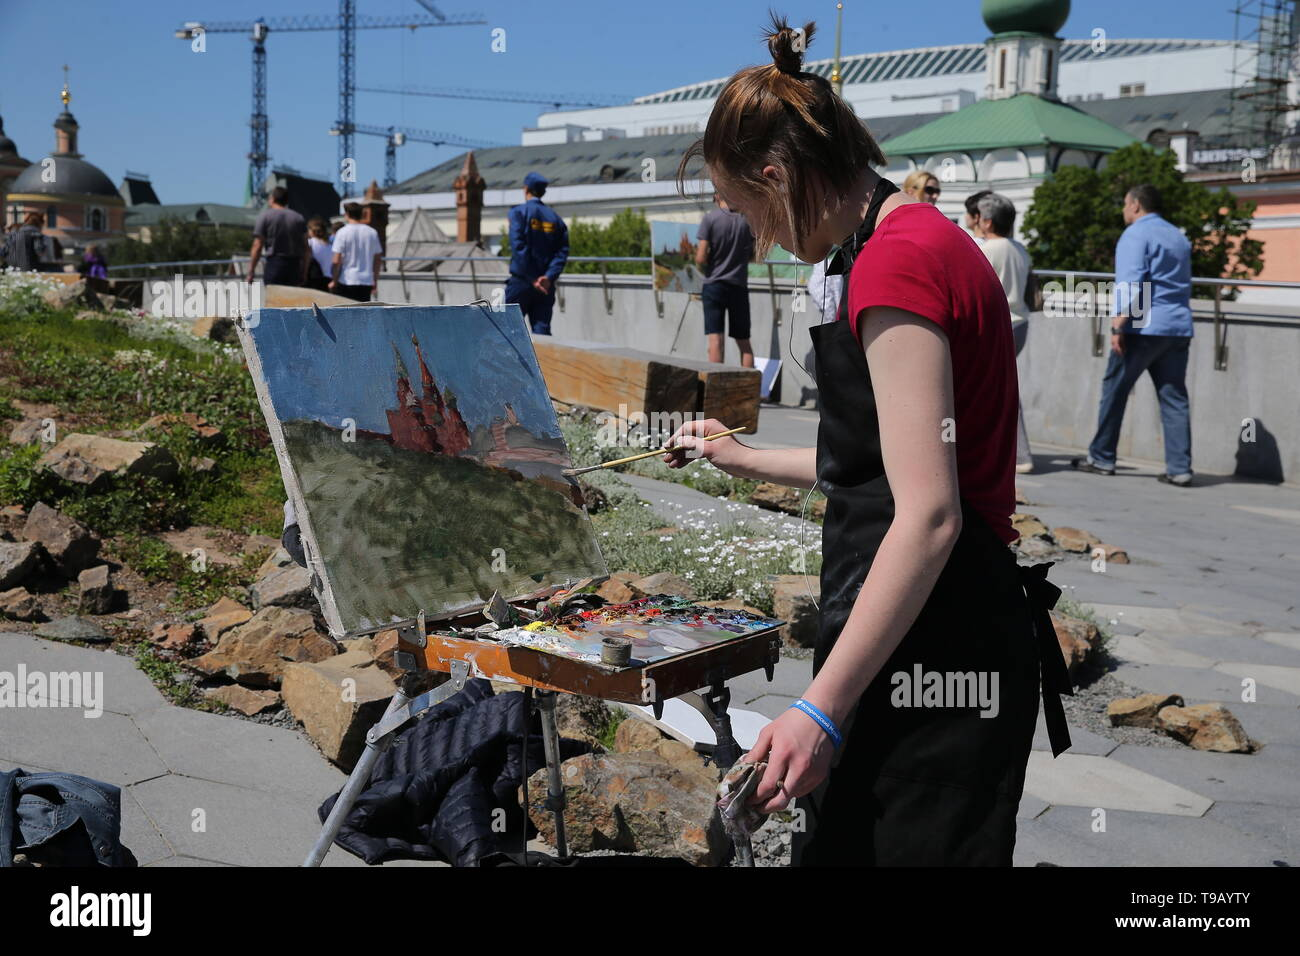 Moscow, Russia. 18th May, 2019. MOSCOW, RUSSIA - MAY 18, 2019: A woman during the 9th Draw St Basil's Cathedral art festival. Gavriil Grigorov/TASS Credit: ITAR-TASS News Agency/Alamy Live News - Stock Image